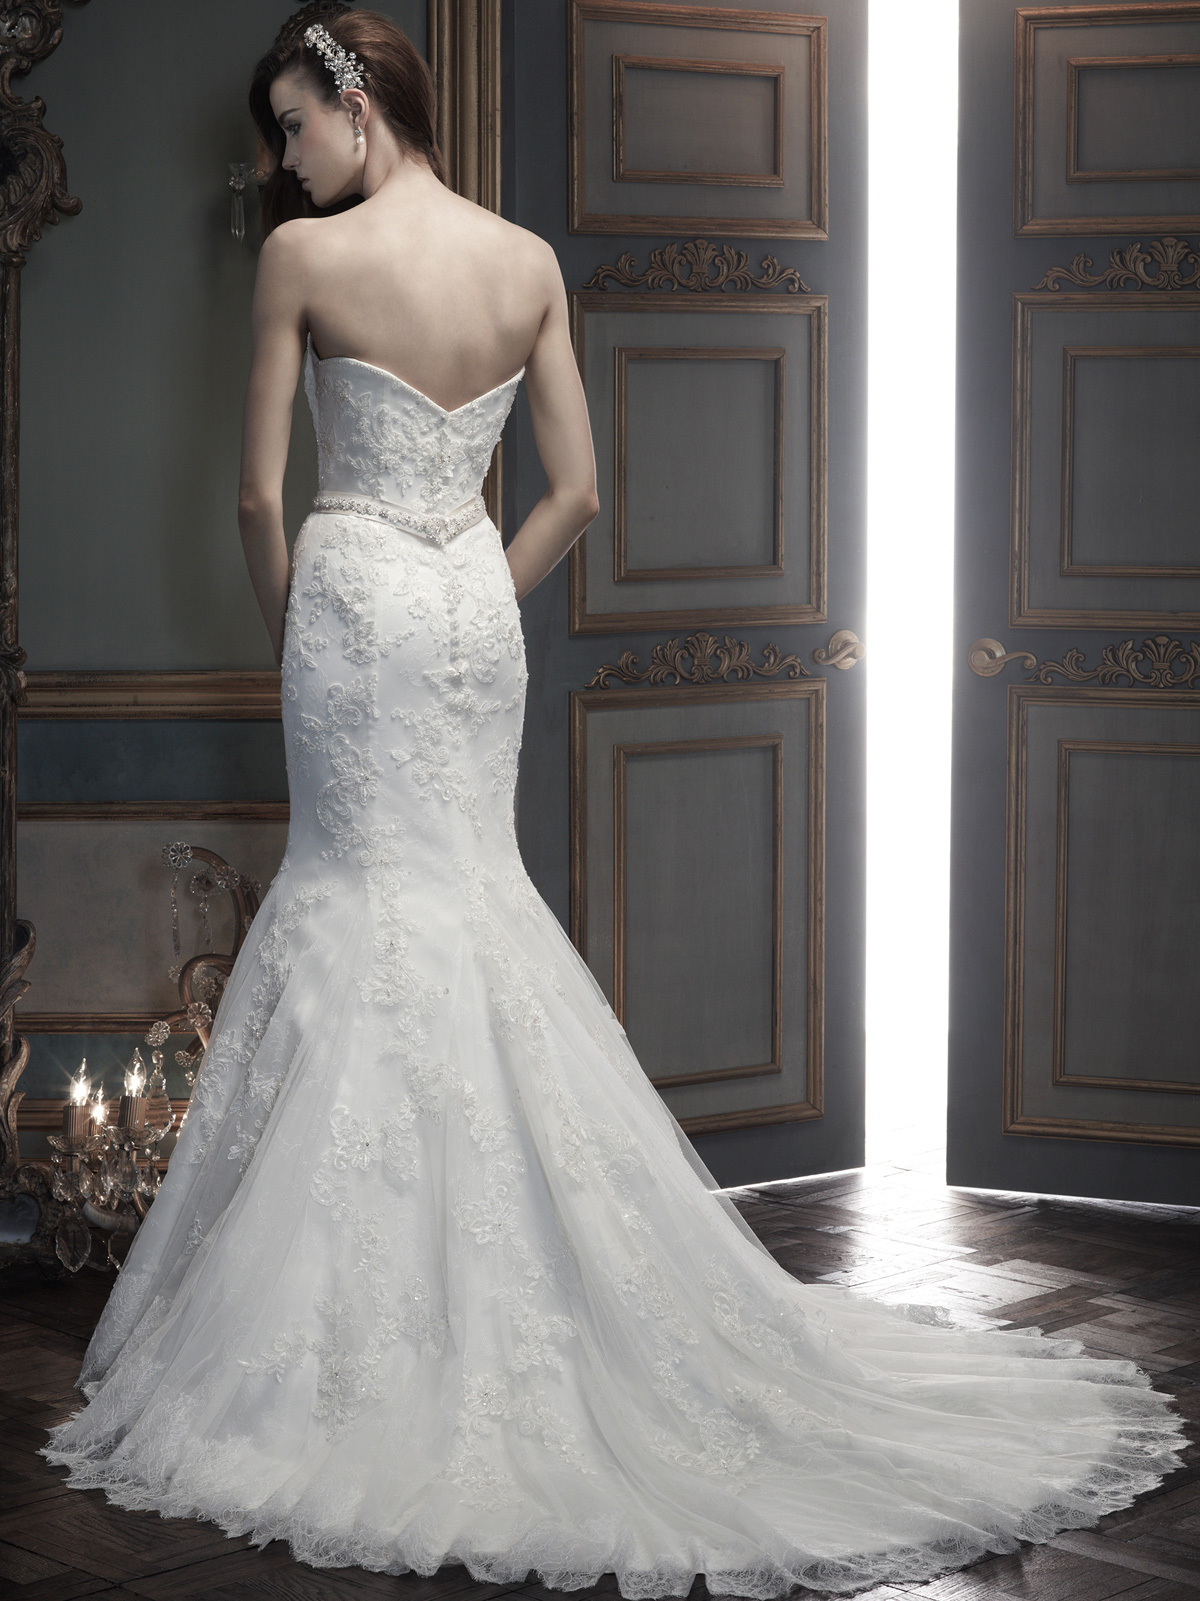 Beautiful Mermaid Bridal Dress Cb Couture